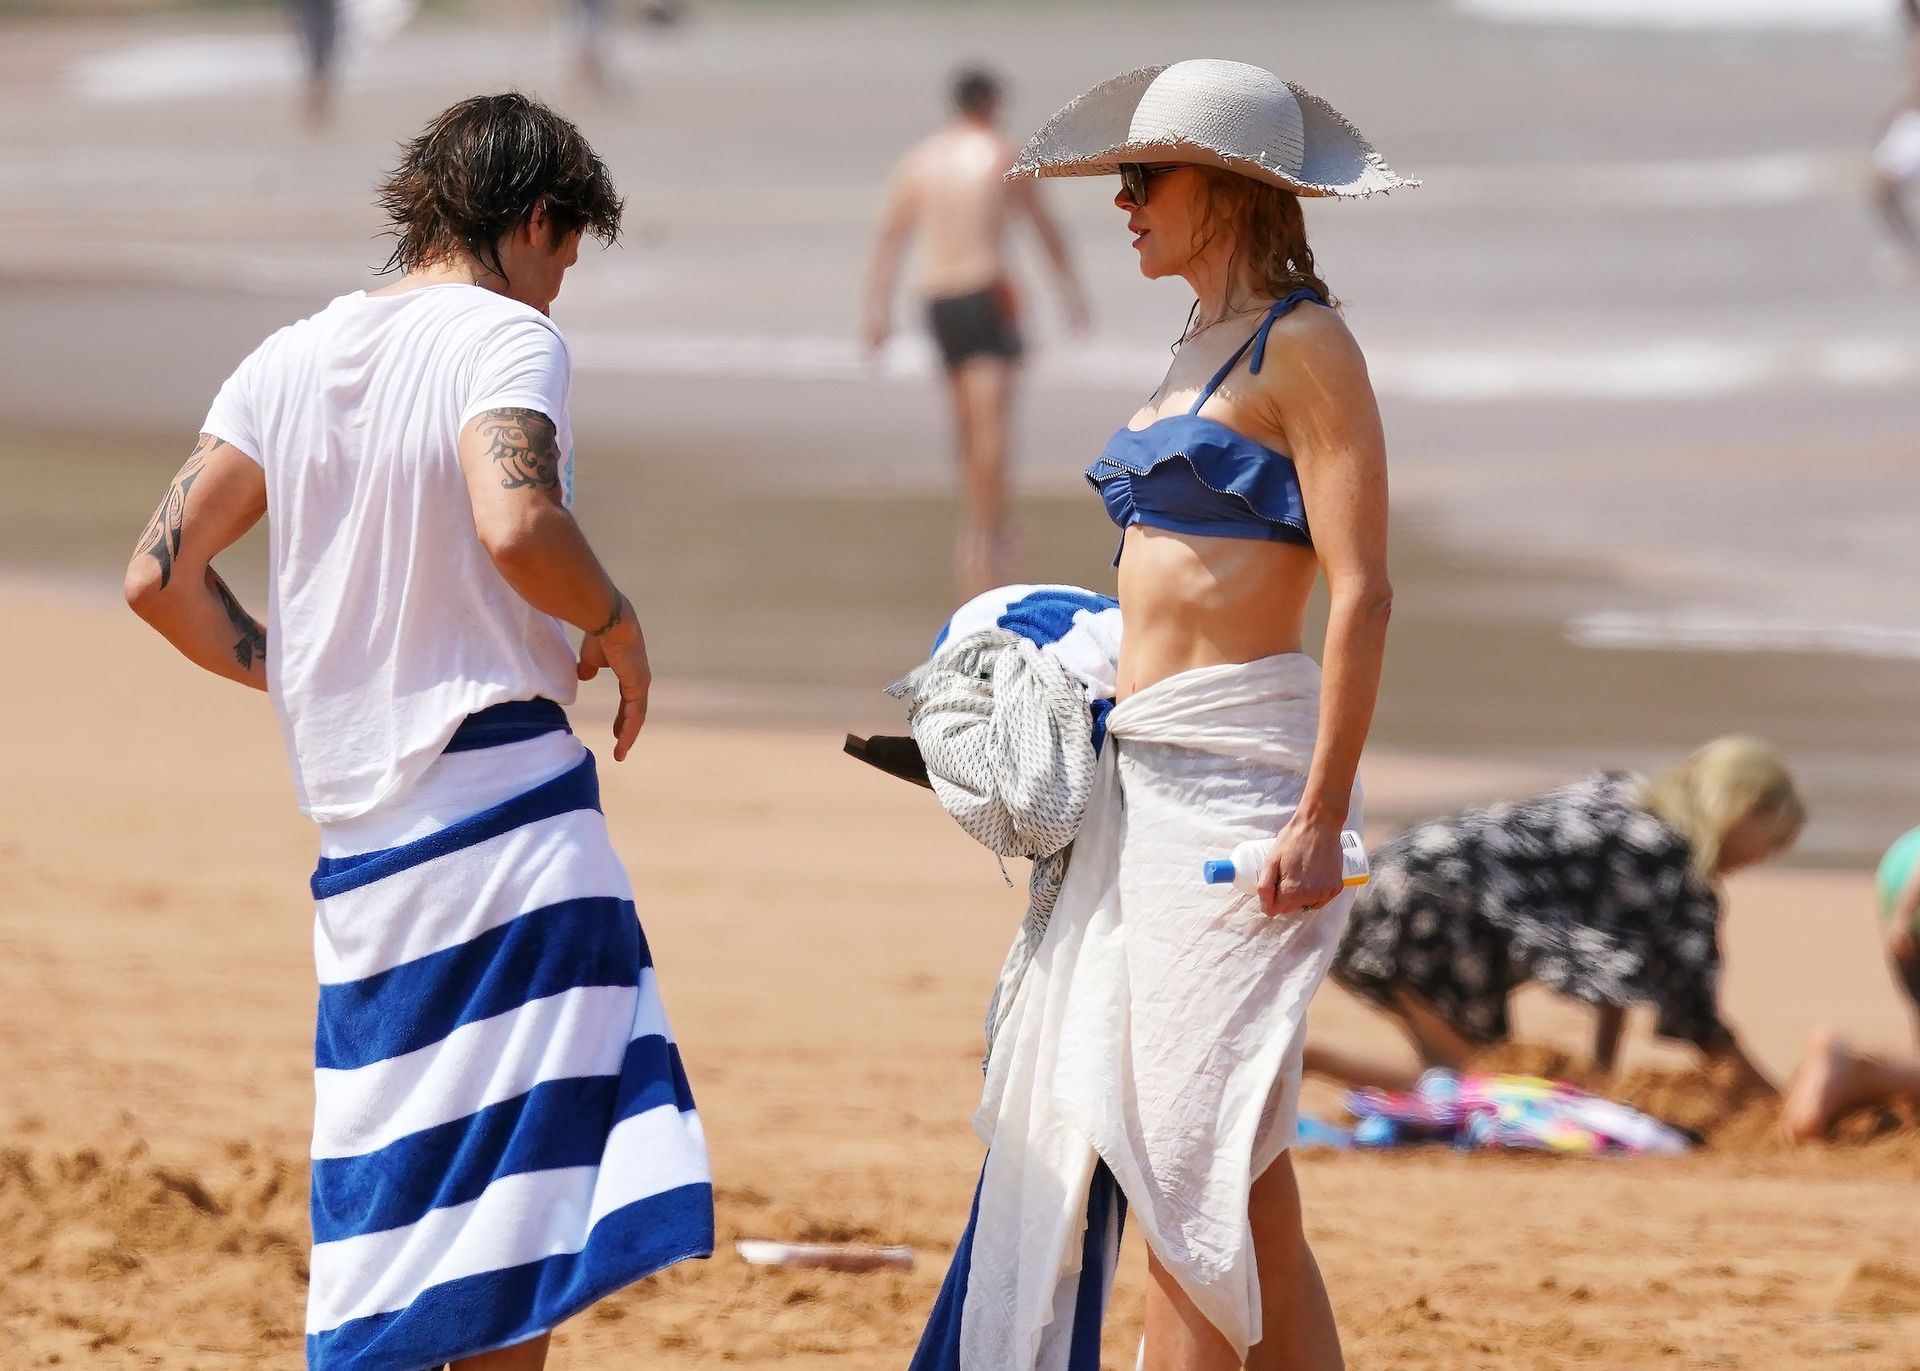 Nicole Kidman Hits The Beach While In Sydney With Her Family 0089